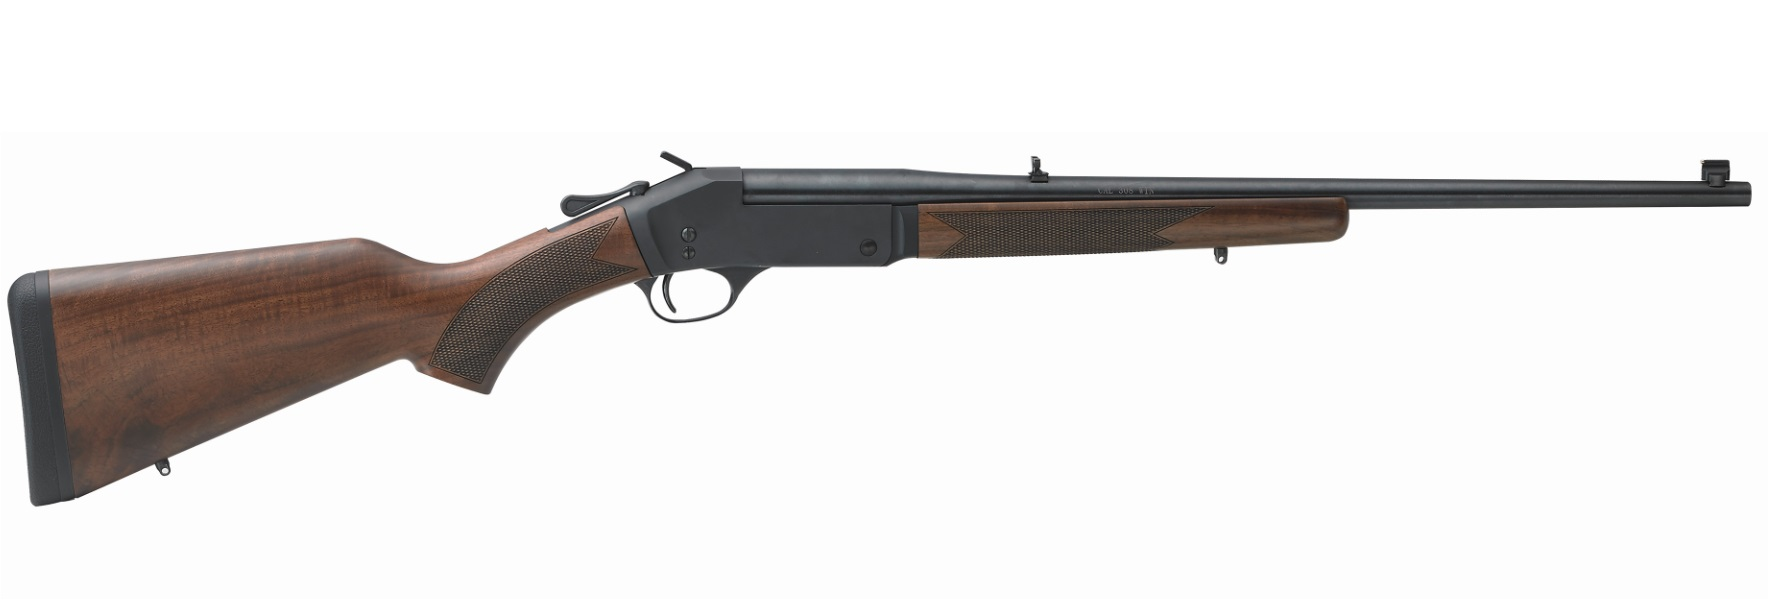 Henry Repeating Arms Henry Singleshot Rifle 308 Win